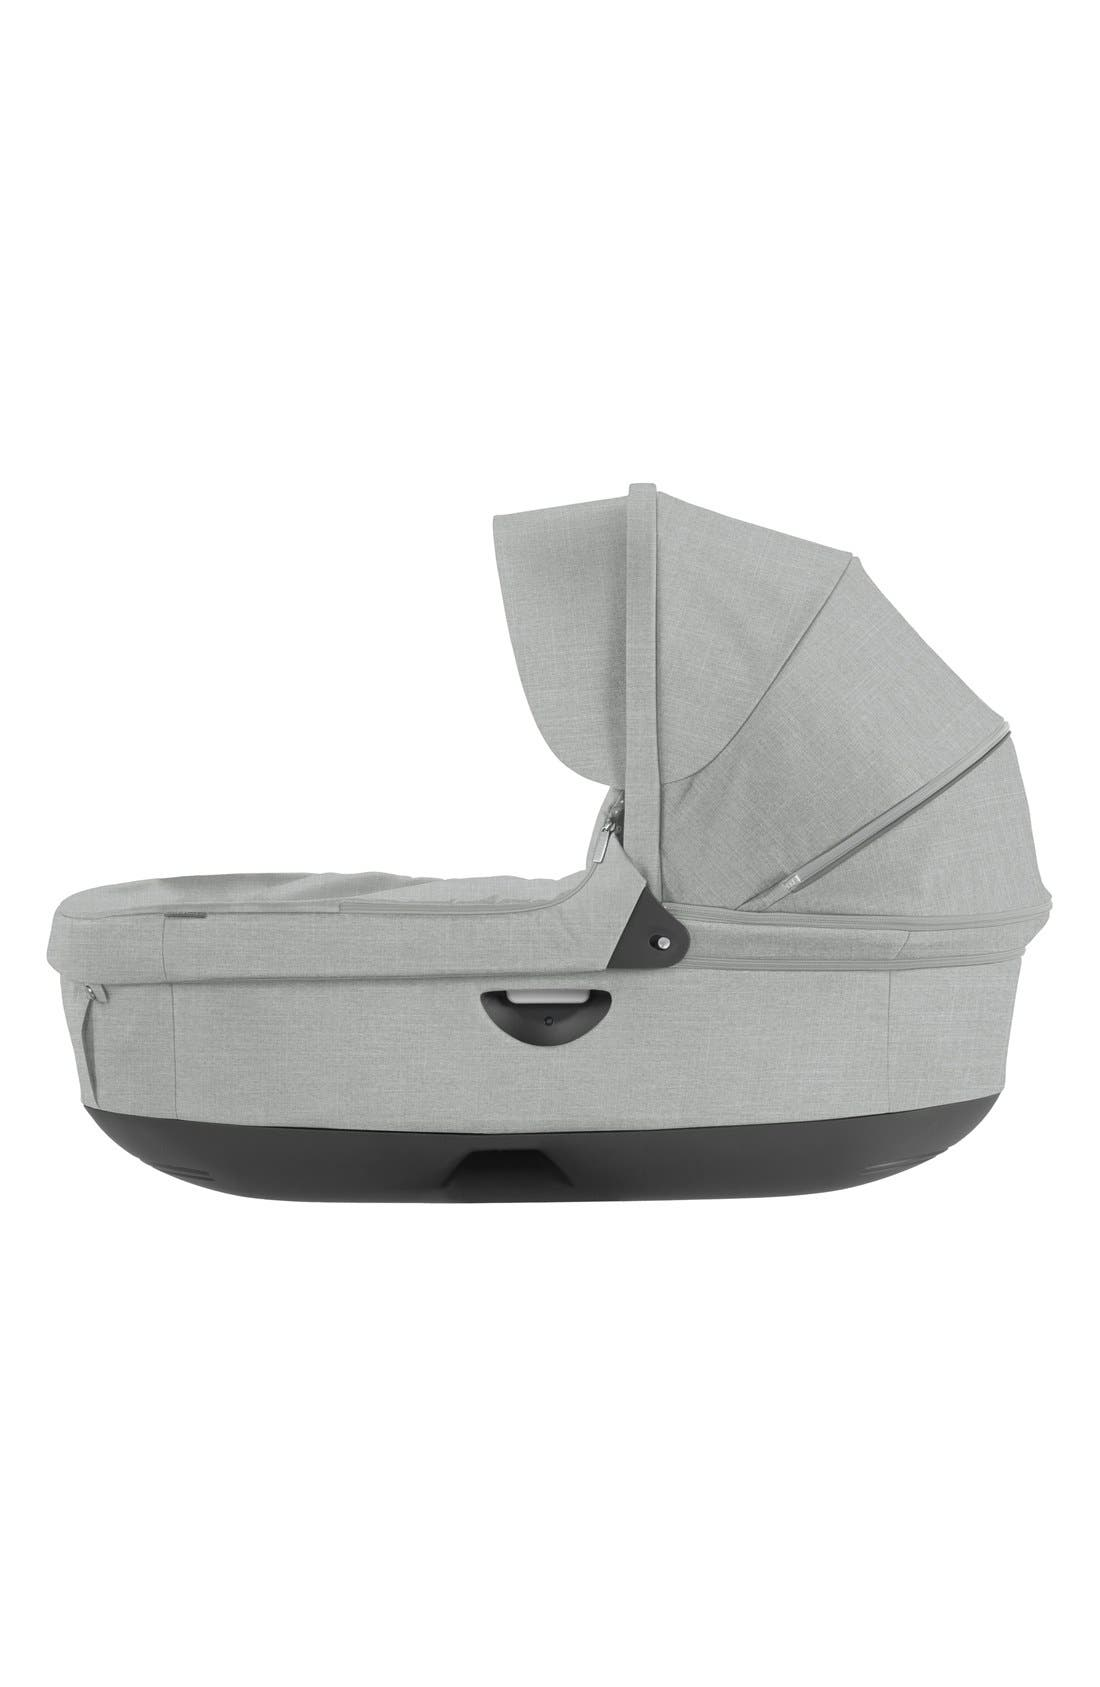 Alternate Image 1 Selected - Stokke 'Trailz & Crusi' Carry Cot (Baby)